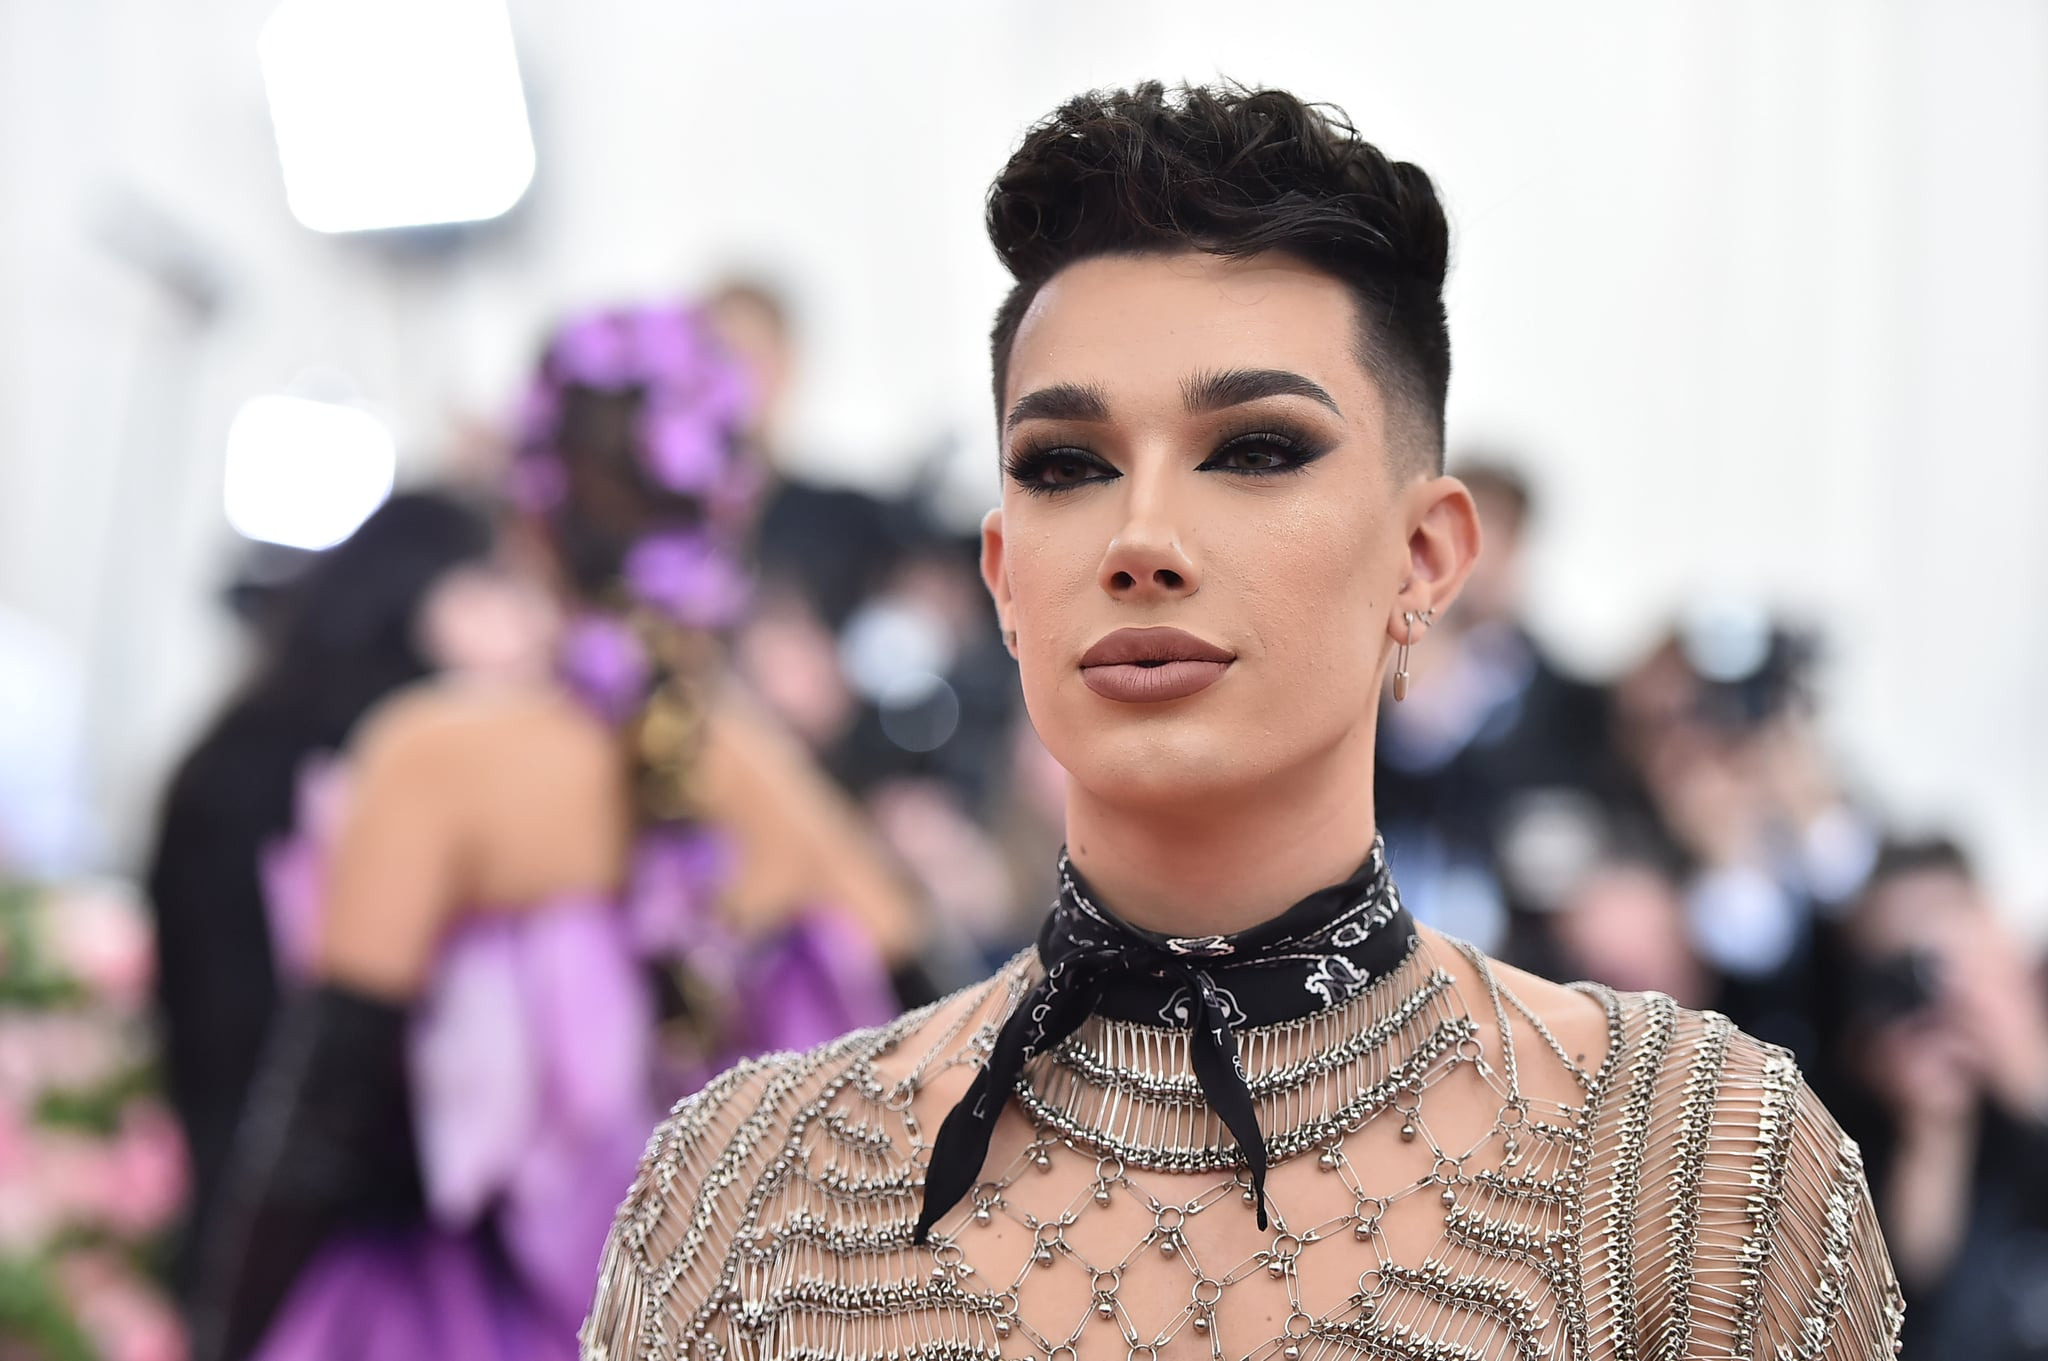 NEW YORK, NEW YORK - MAY 06: James Charles attends The 2019 Met Gala Celebrating Camp: Notes on Fashion at Metropolitan Museum of Art on May 06, 2019 in New York City. (Photo by Theo Wargo/WireImage)